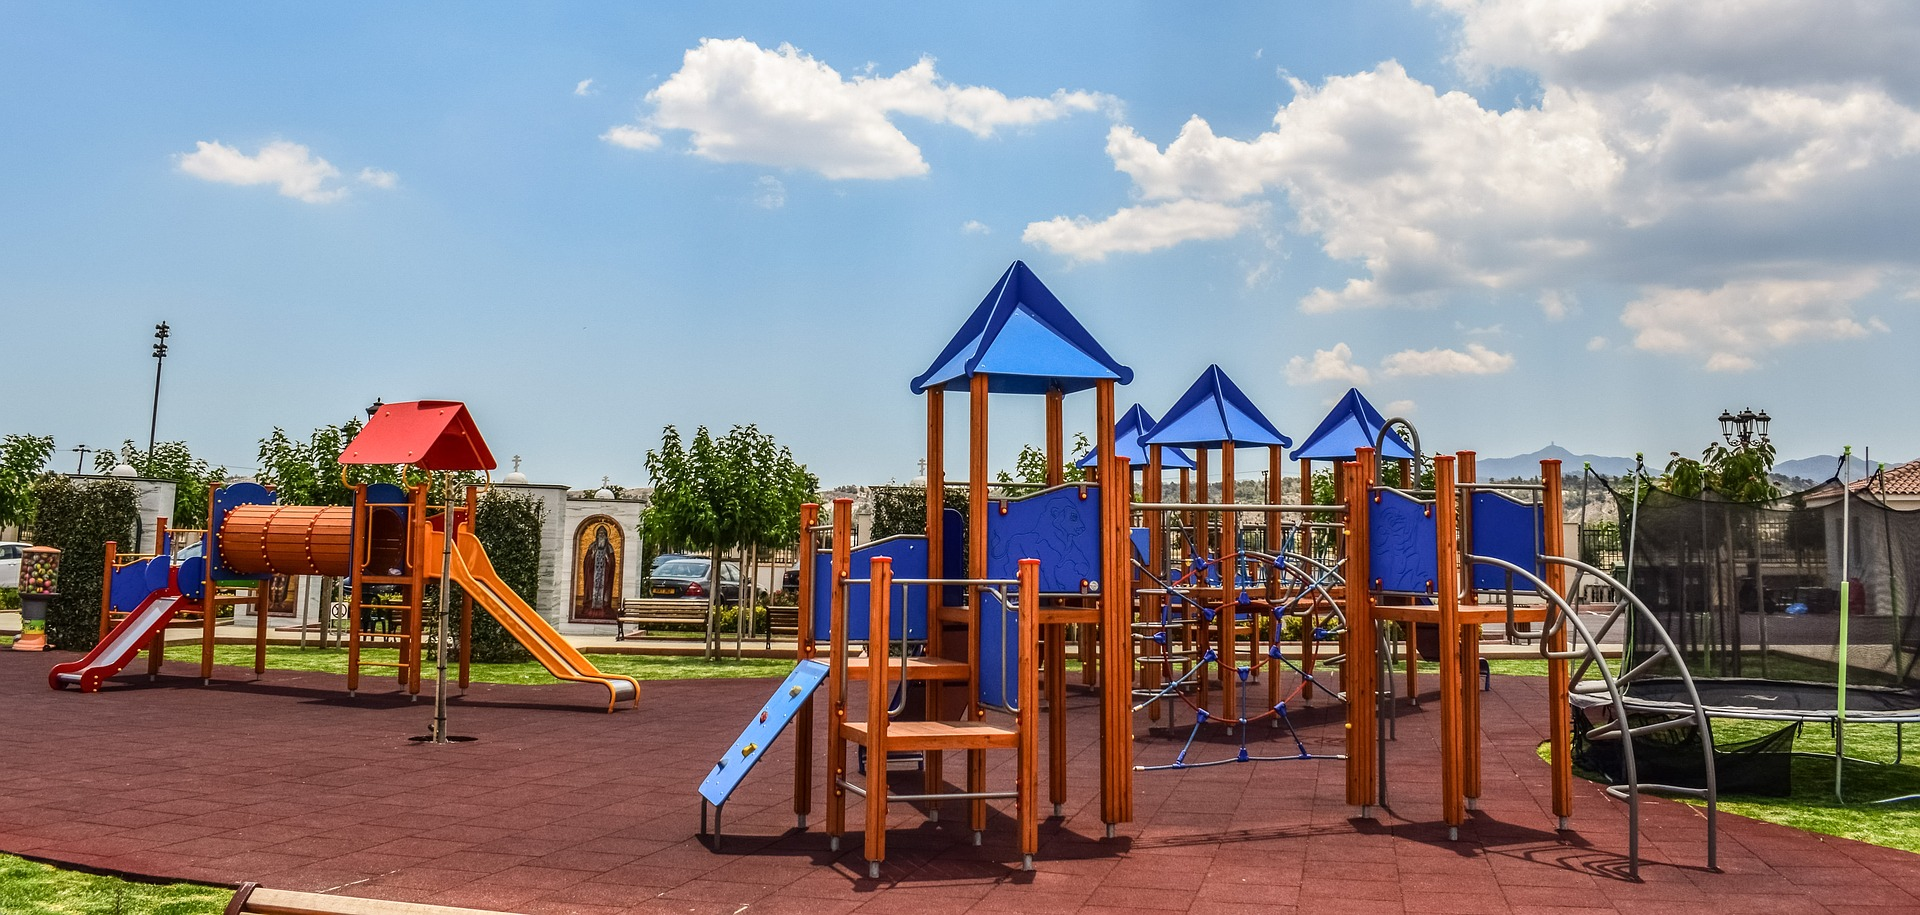 Playground Safety - Why Use An Expert?